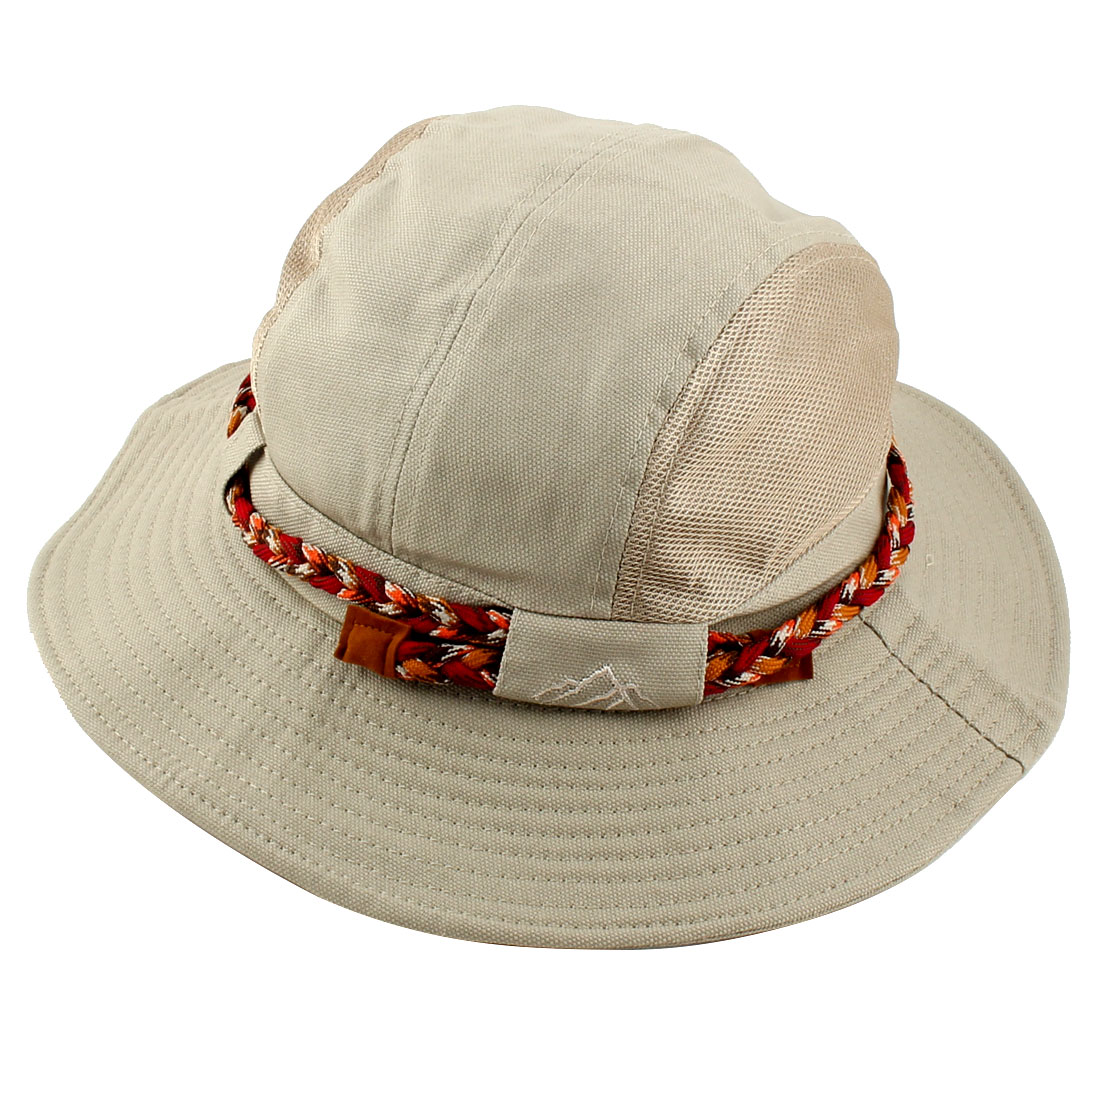 Fisherman Cotton Blends Climbing Hunting Adjustable Strap Wide Brim Protective Bucket Summer Cap Fishing Hat Beige